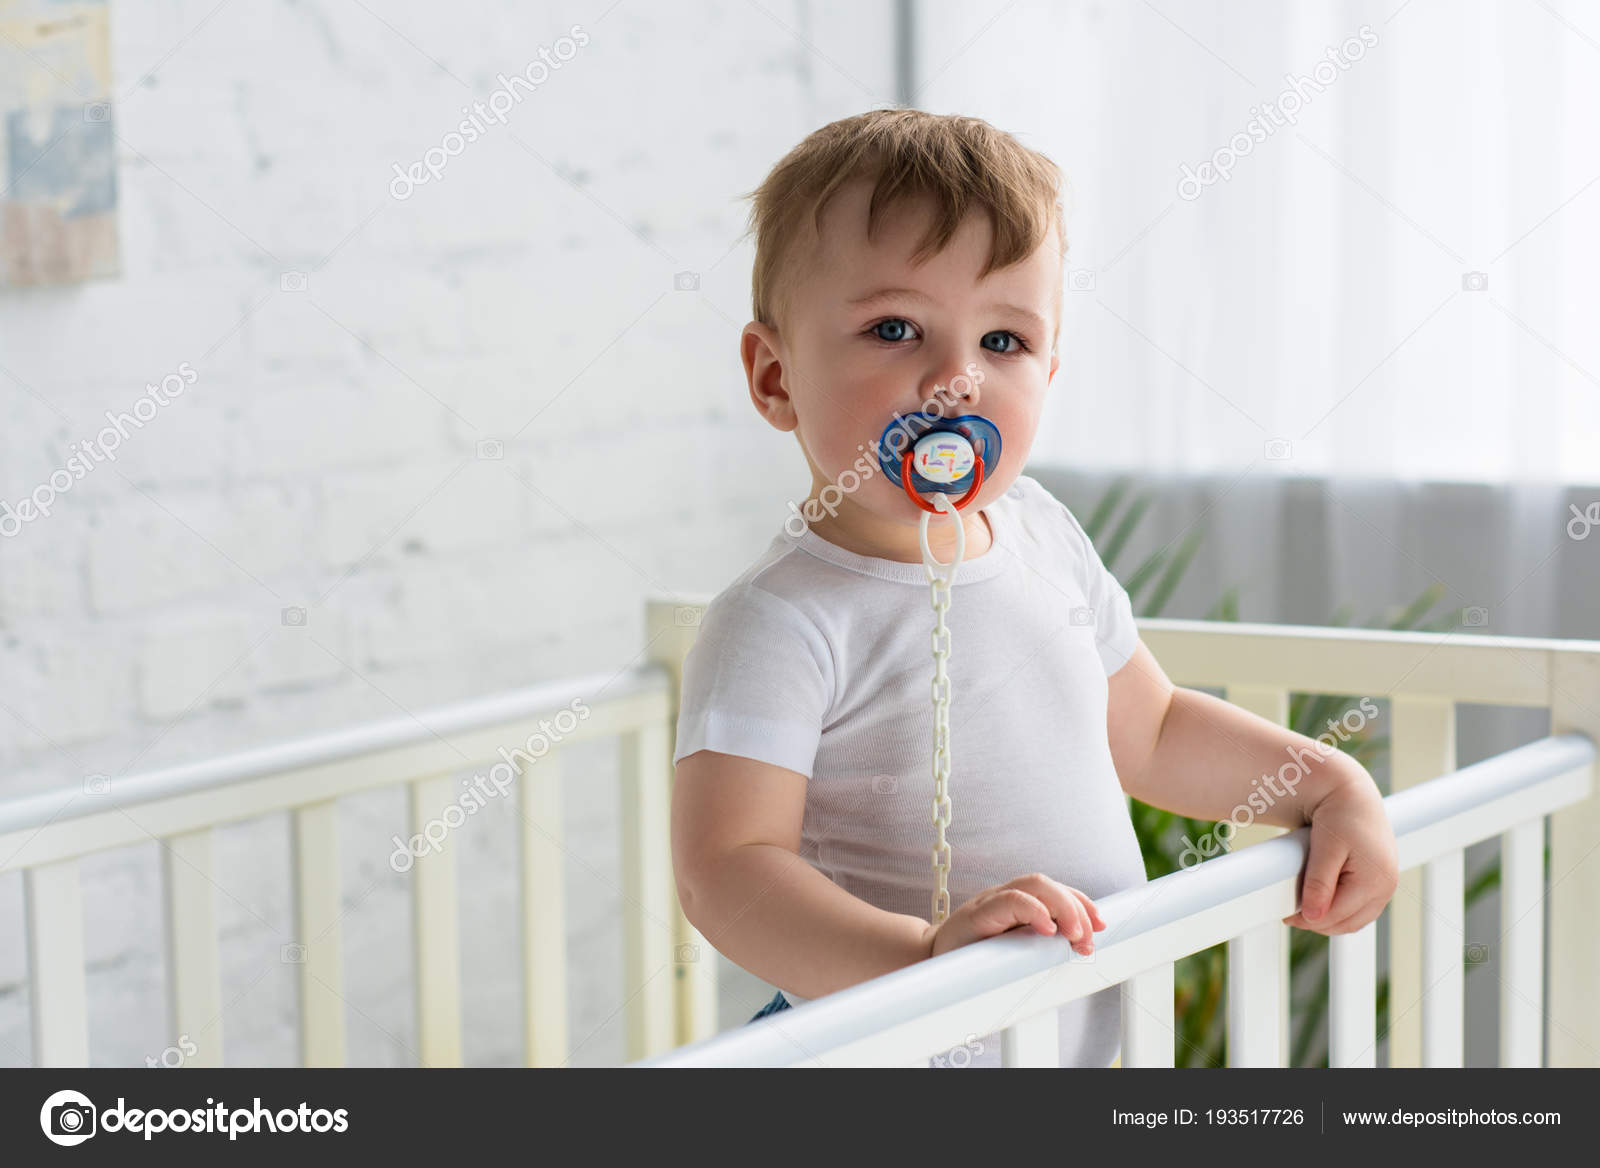 Cute Little Baby Boy Pacifier Baby Crib Looking Camera Home Stock